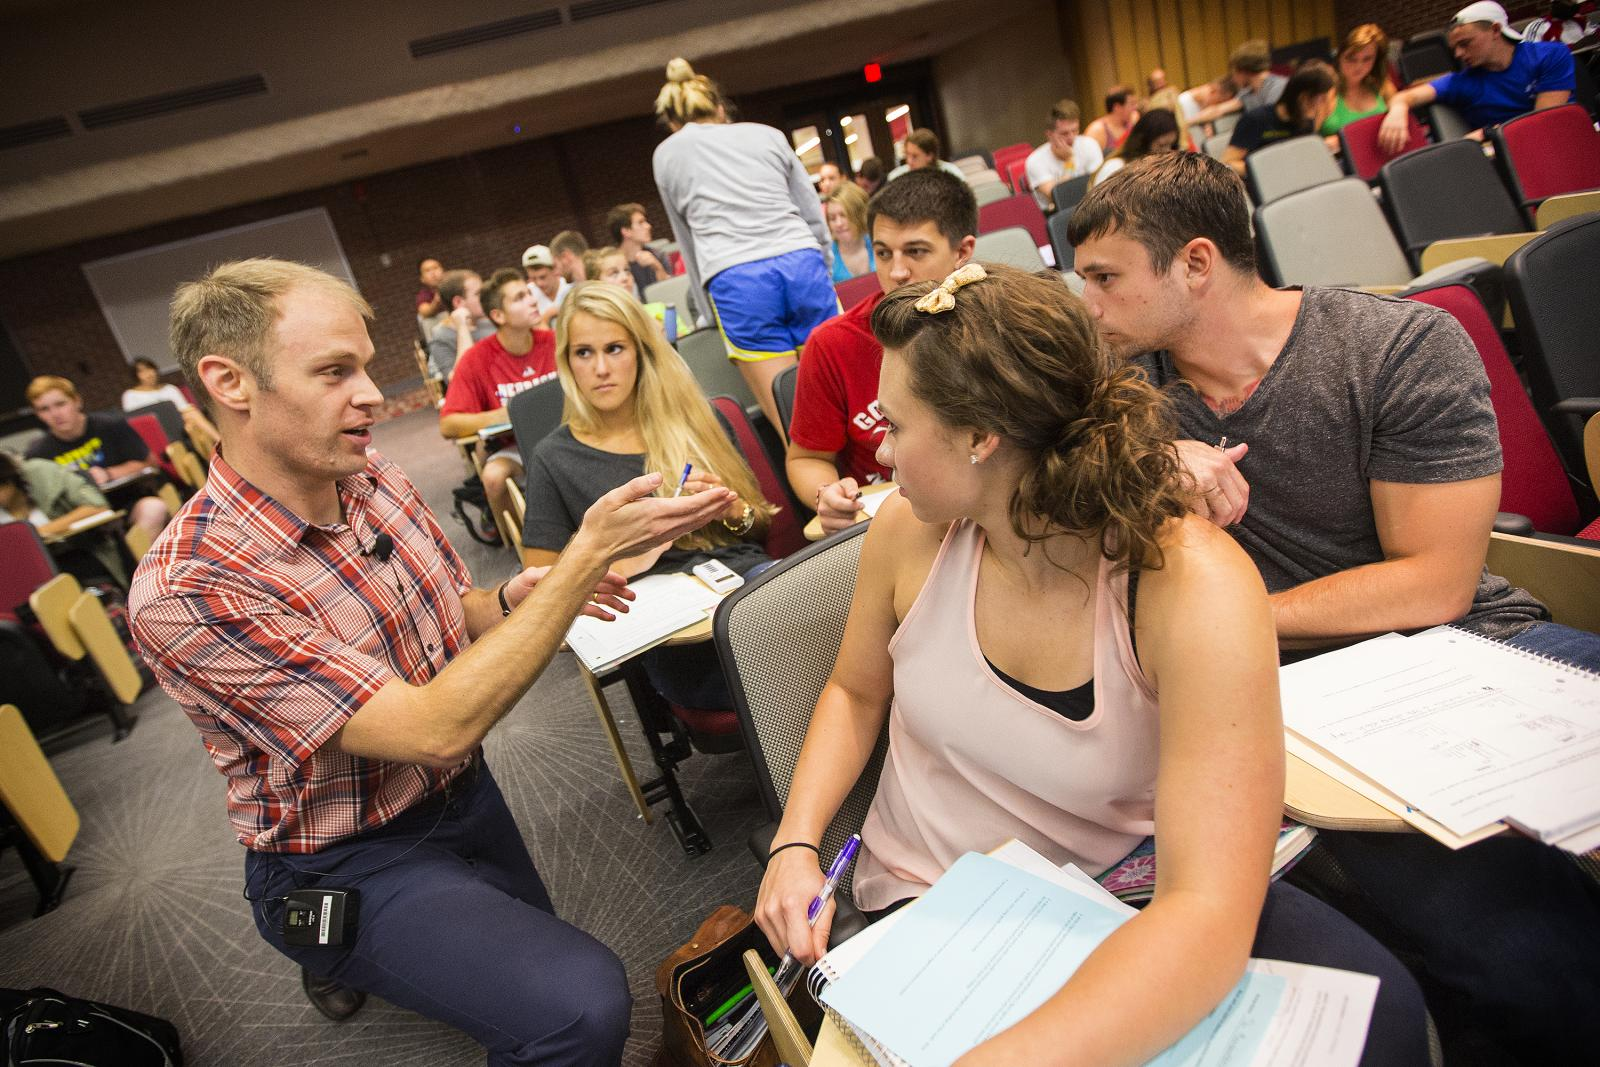 The University of Nebraska-Lincoln is proud of its incredible faculty and staff, who will be right there to support you in your academic career.